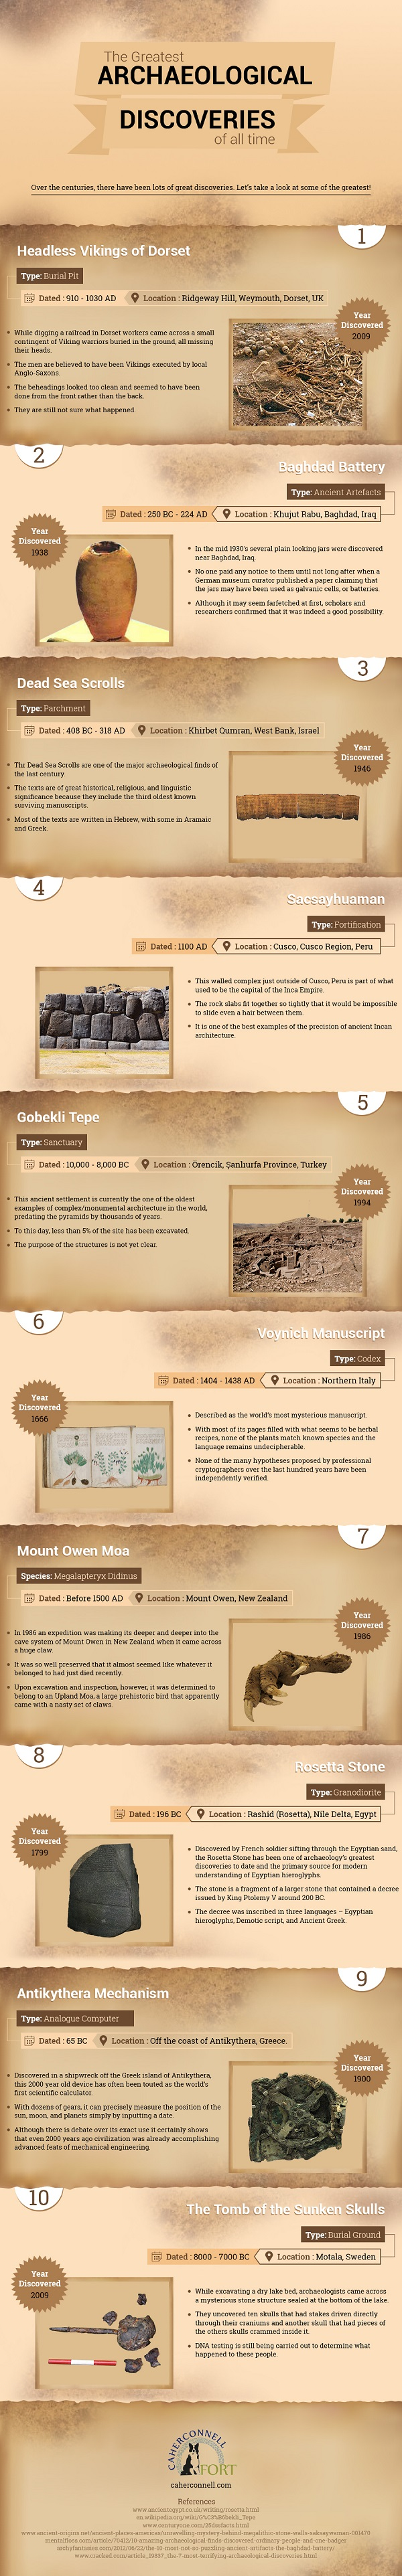 The Greatest Archaeological Discoveries Of All Time [Infographic]600